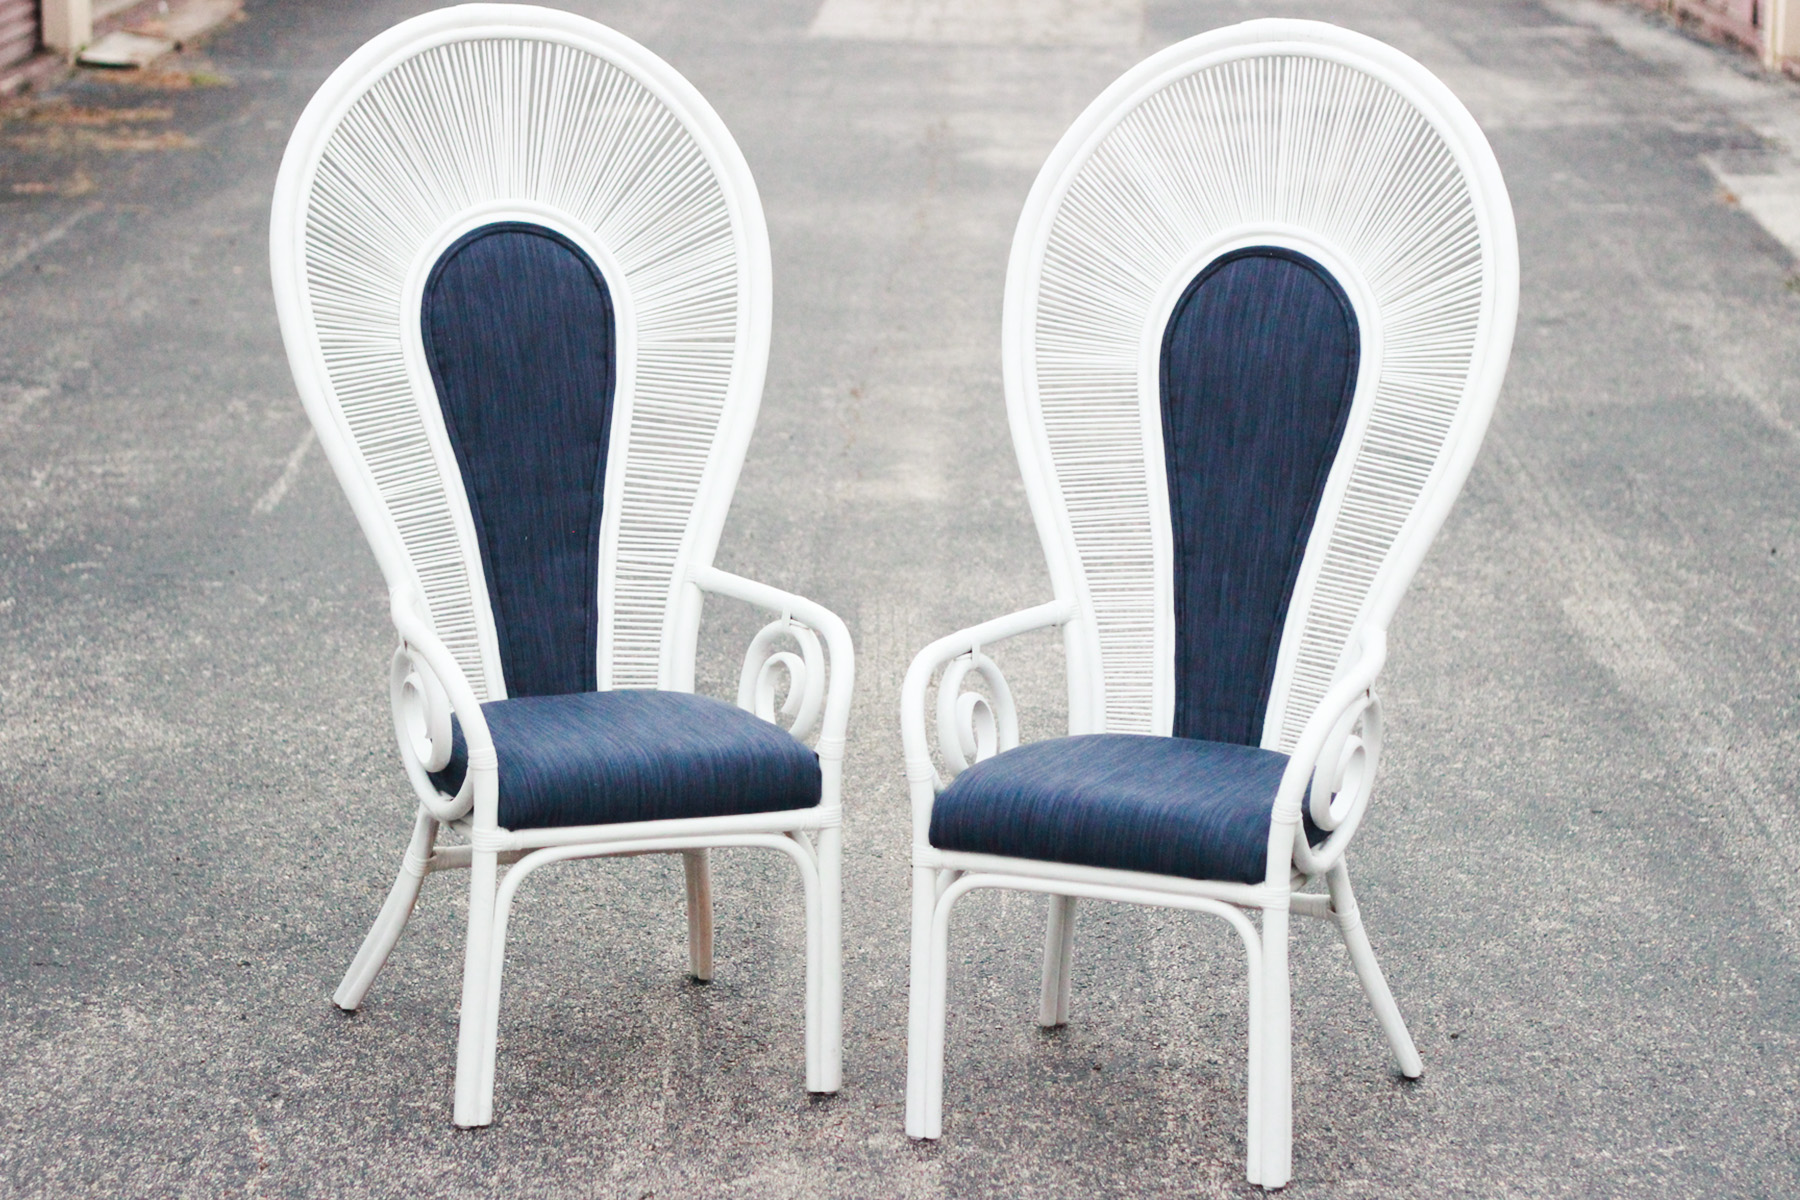 Monarch Chairs - Scavenged Vintage Rentals.jpg